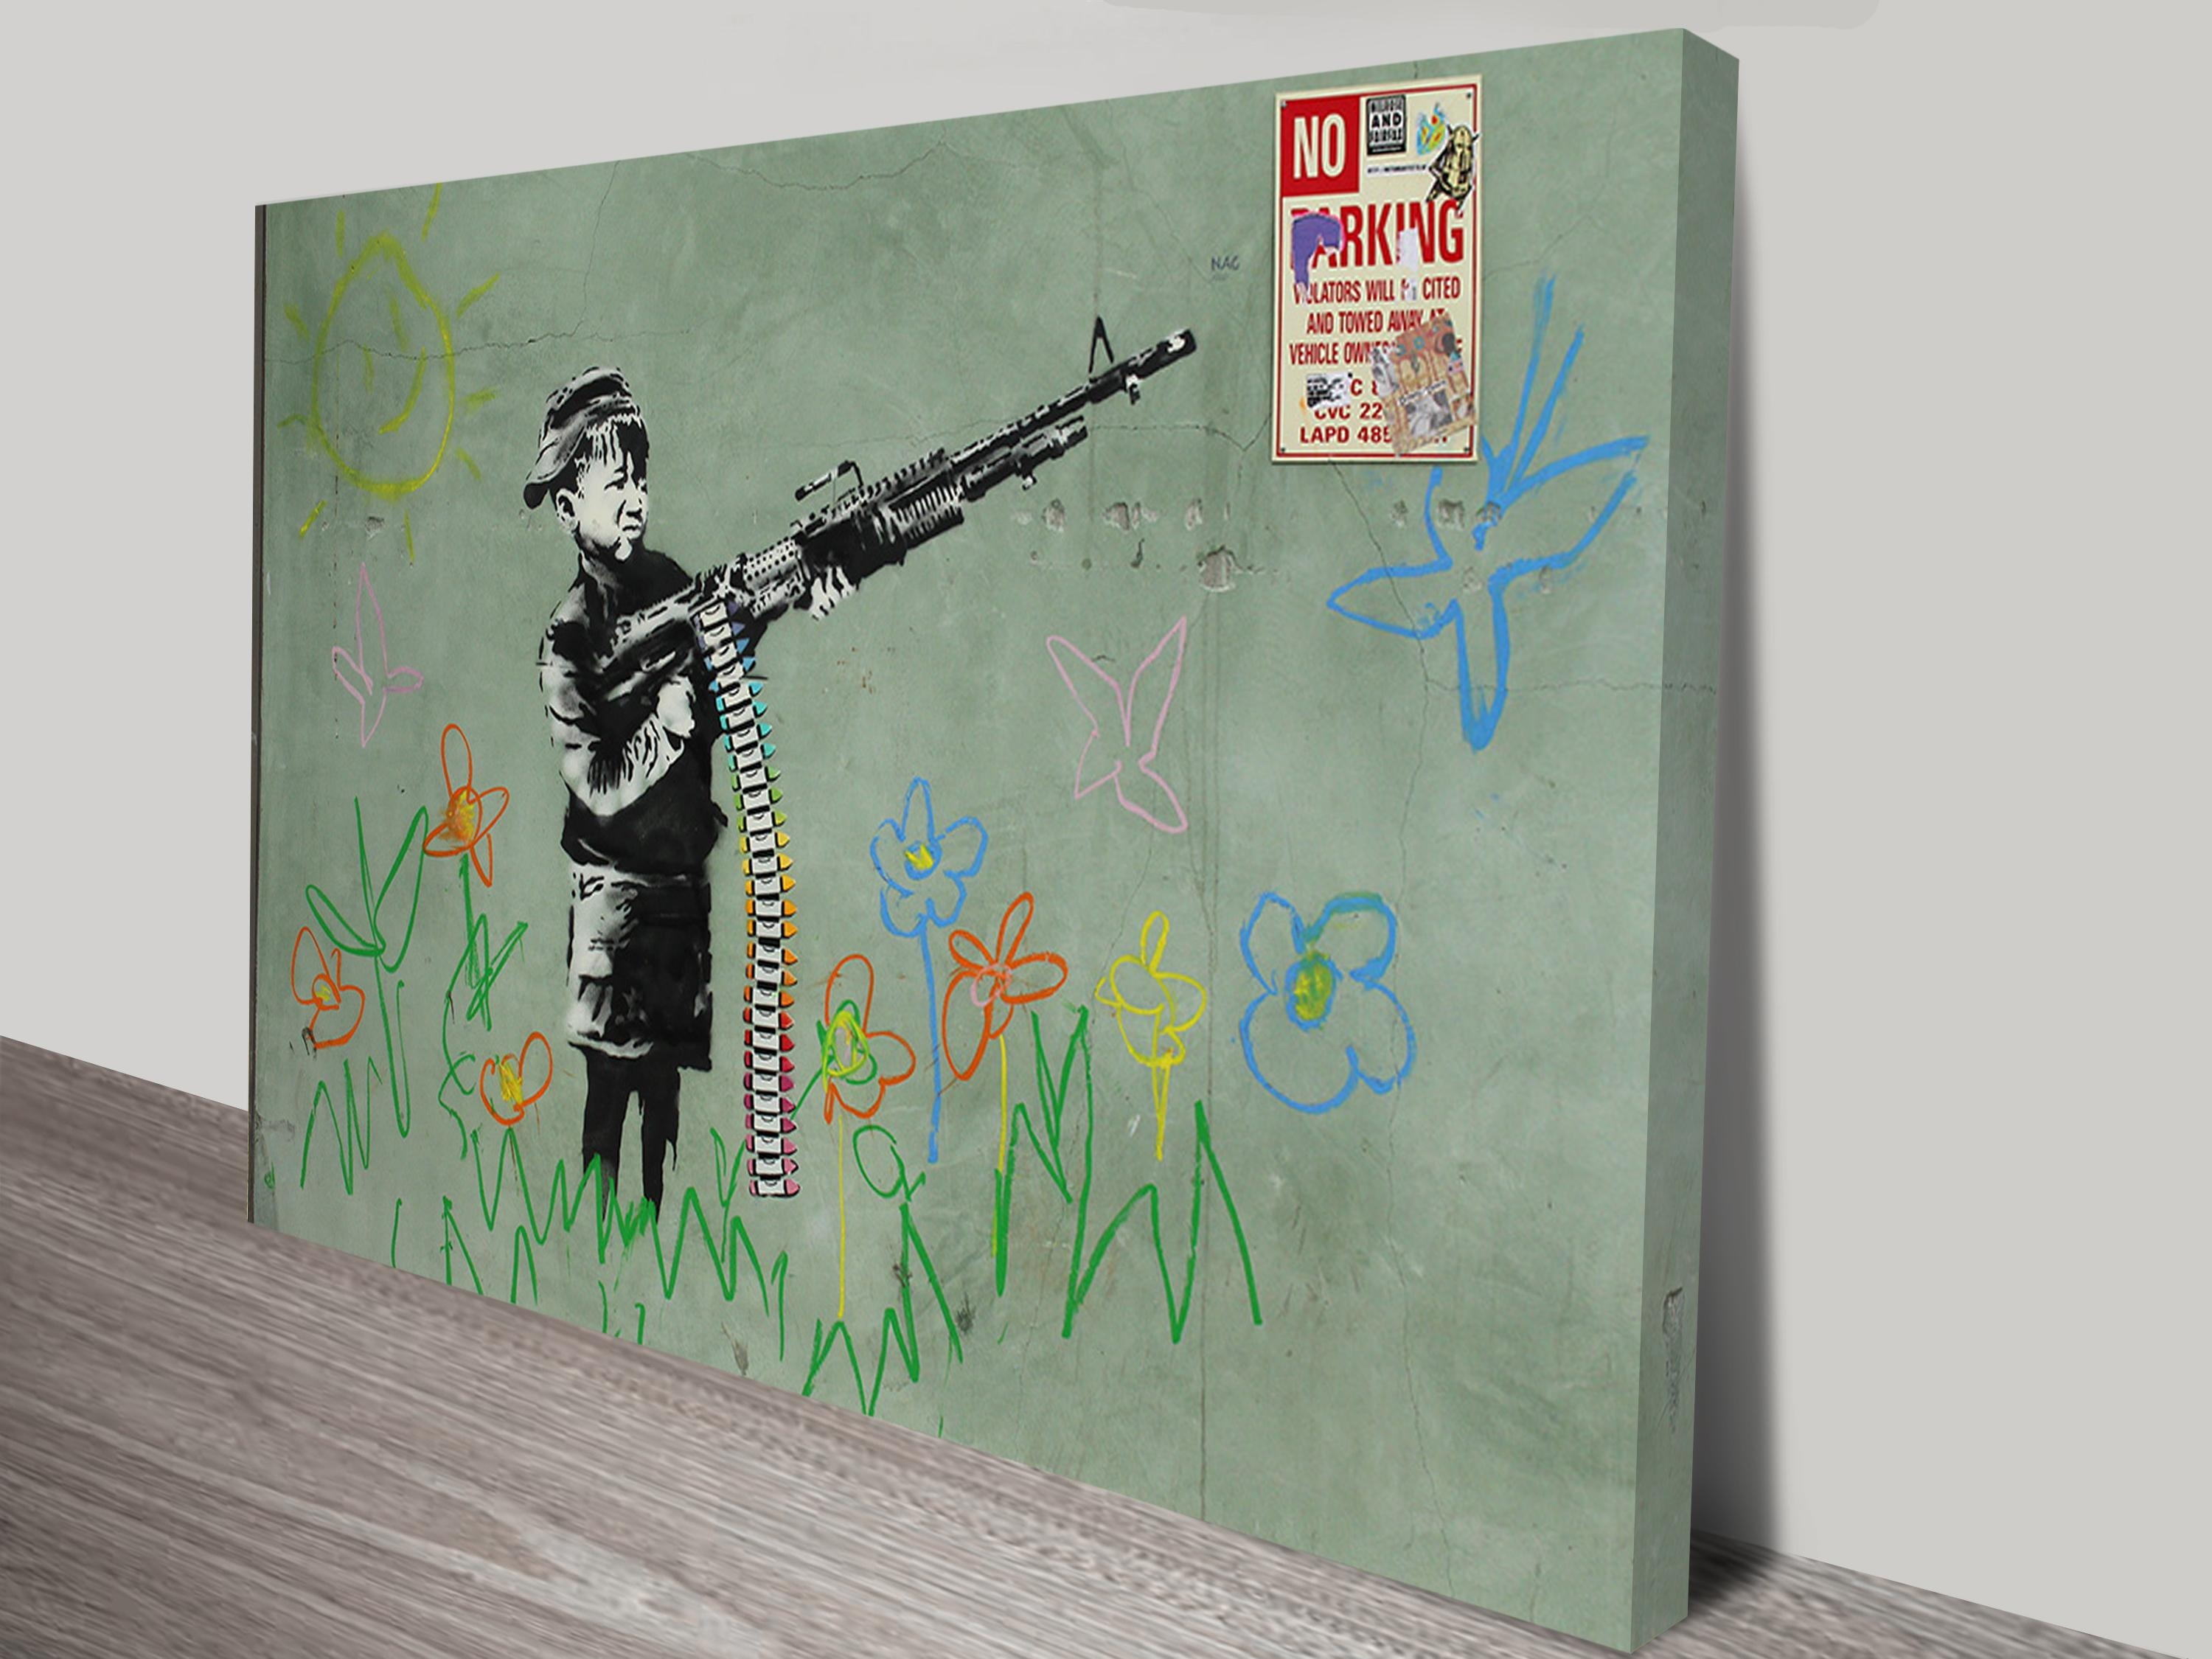 Child Soldiers Wall Art Print Regarding Banksy Wall Art Canvas (View 3 of 20)